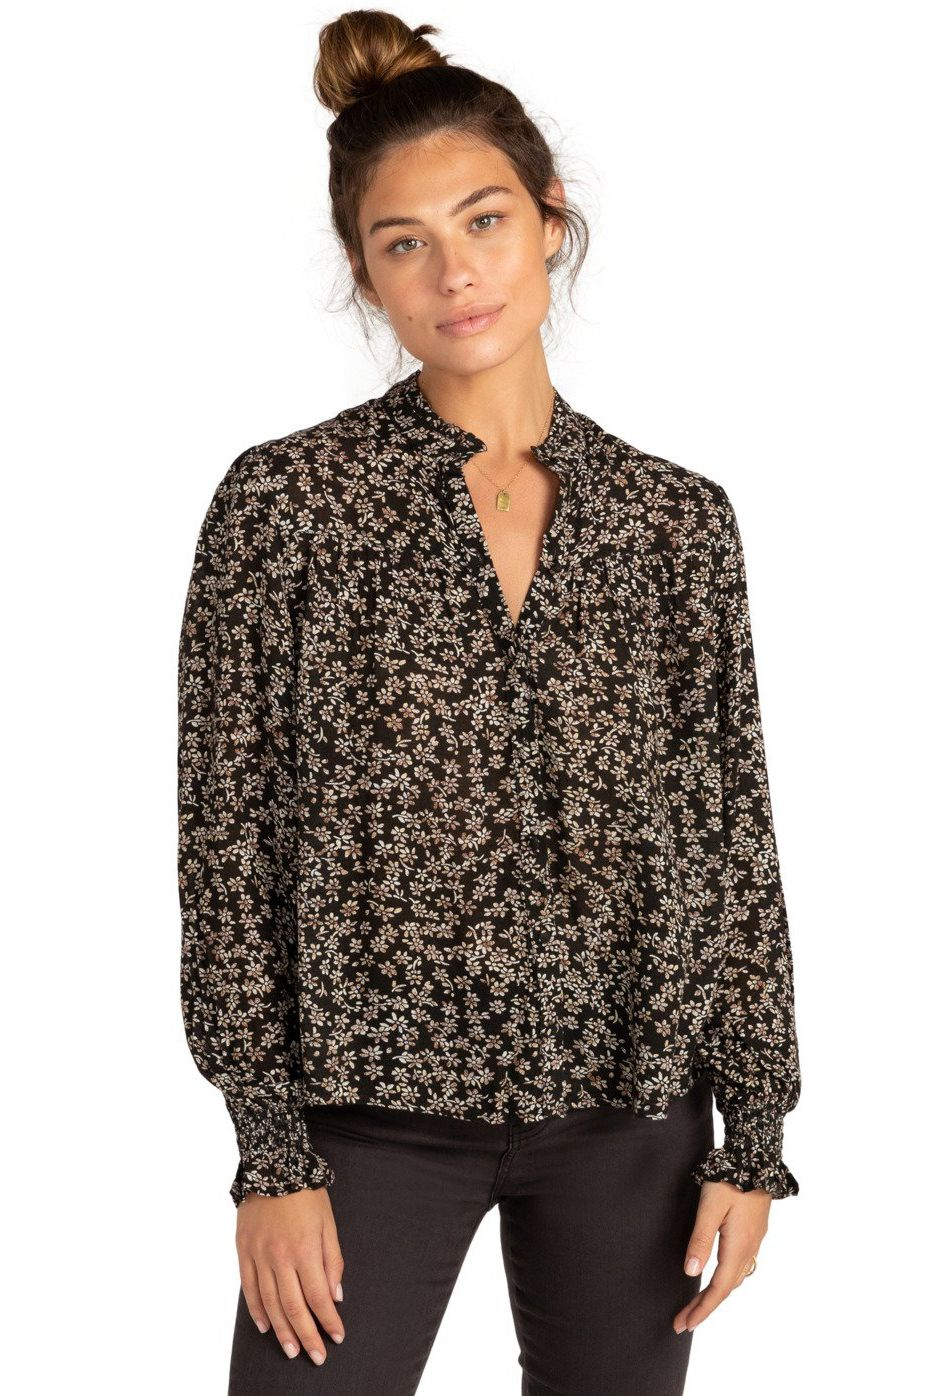 Billabong Top BY NIGHT PARADISE FOUND Flowers